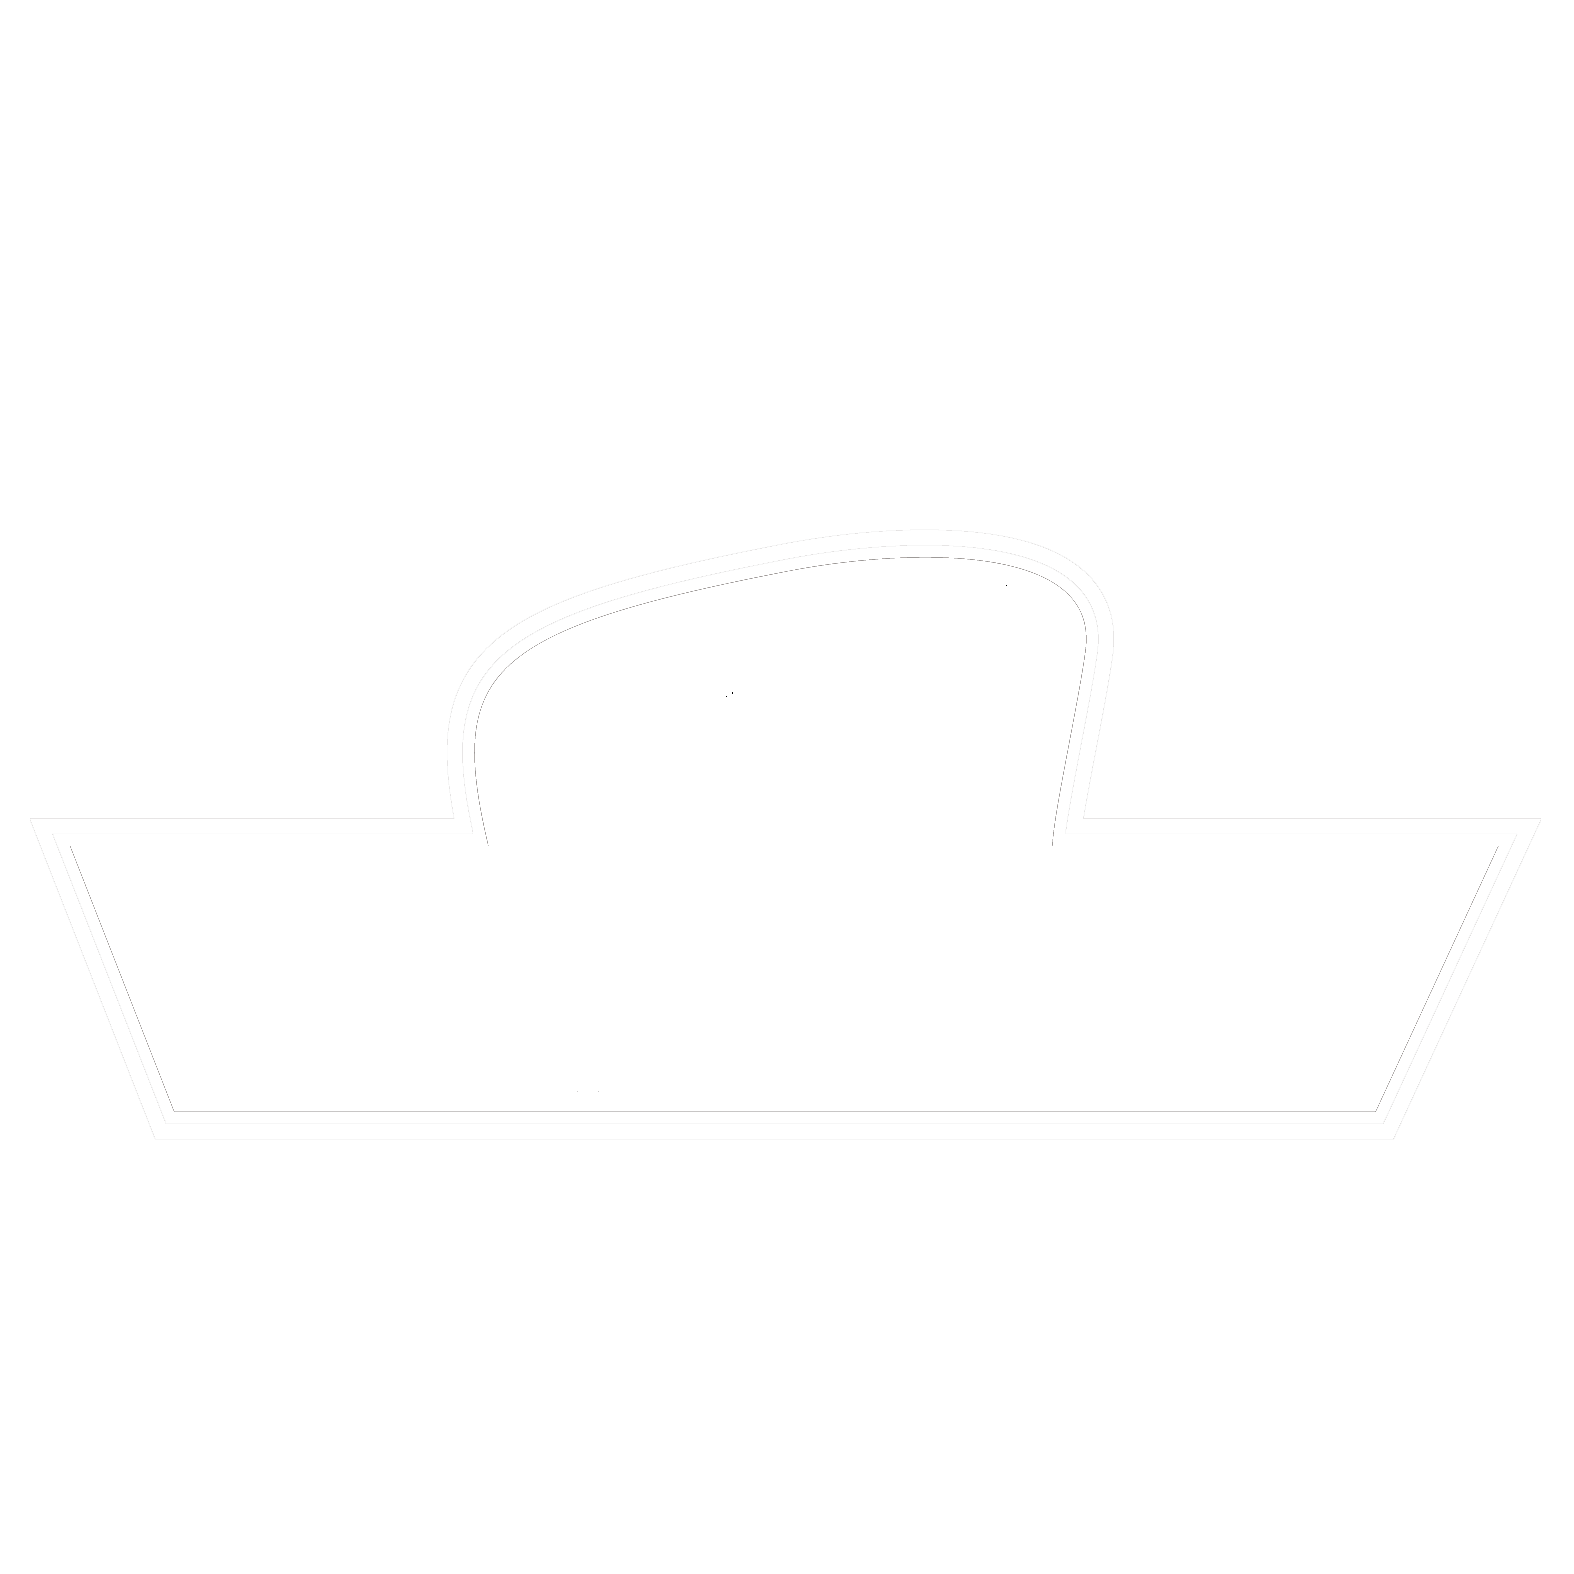 Drive film factory